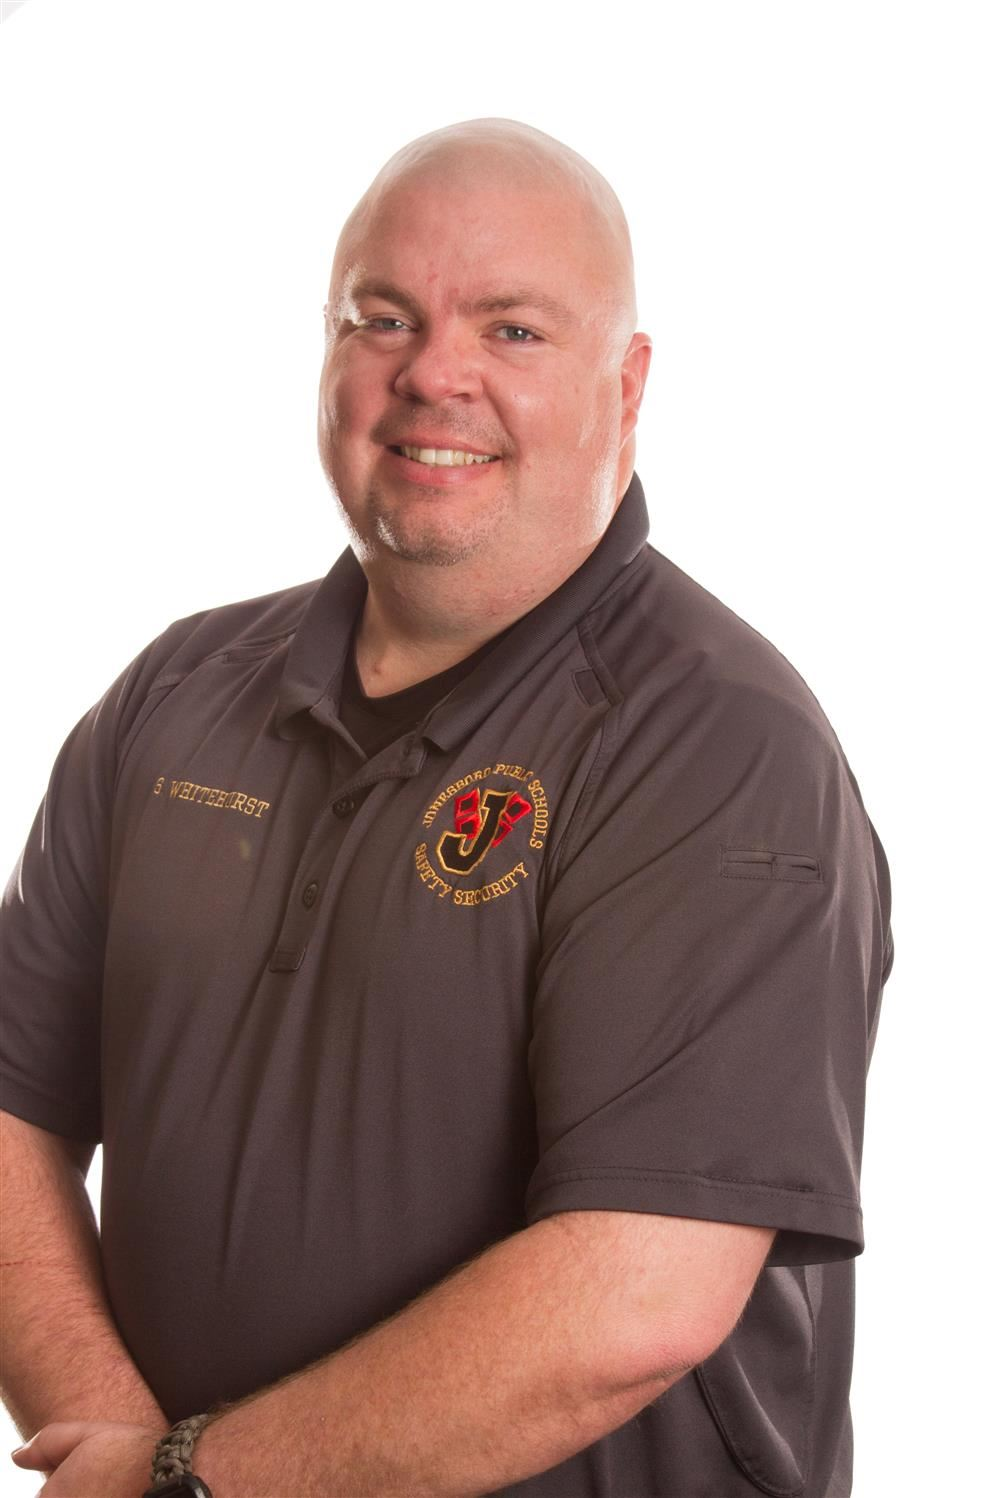 Director of Safety Security, Steve Whitehurst